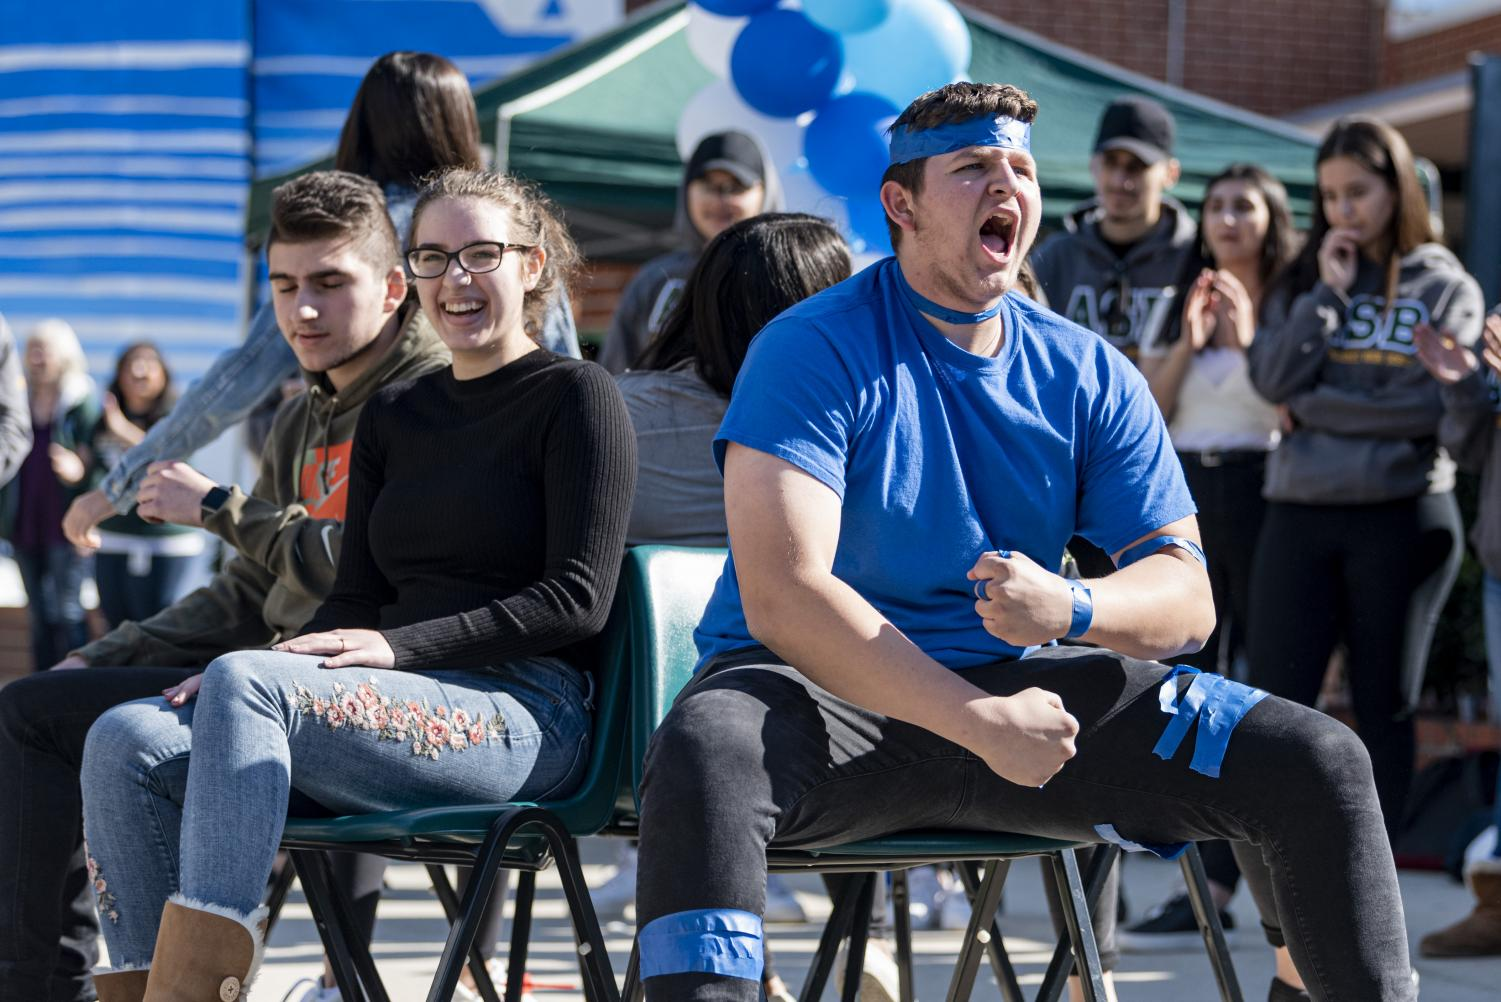 Students play musical chairs at the rally. The games were received with enthusiasm by many students.